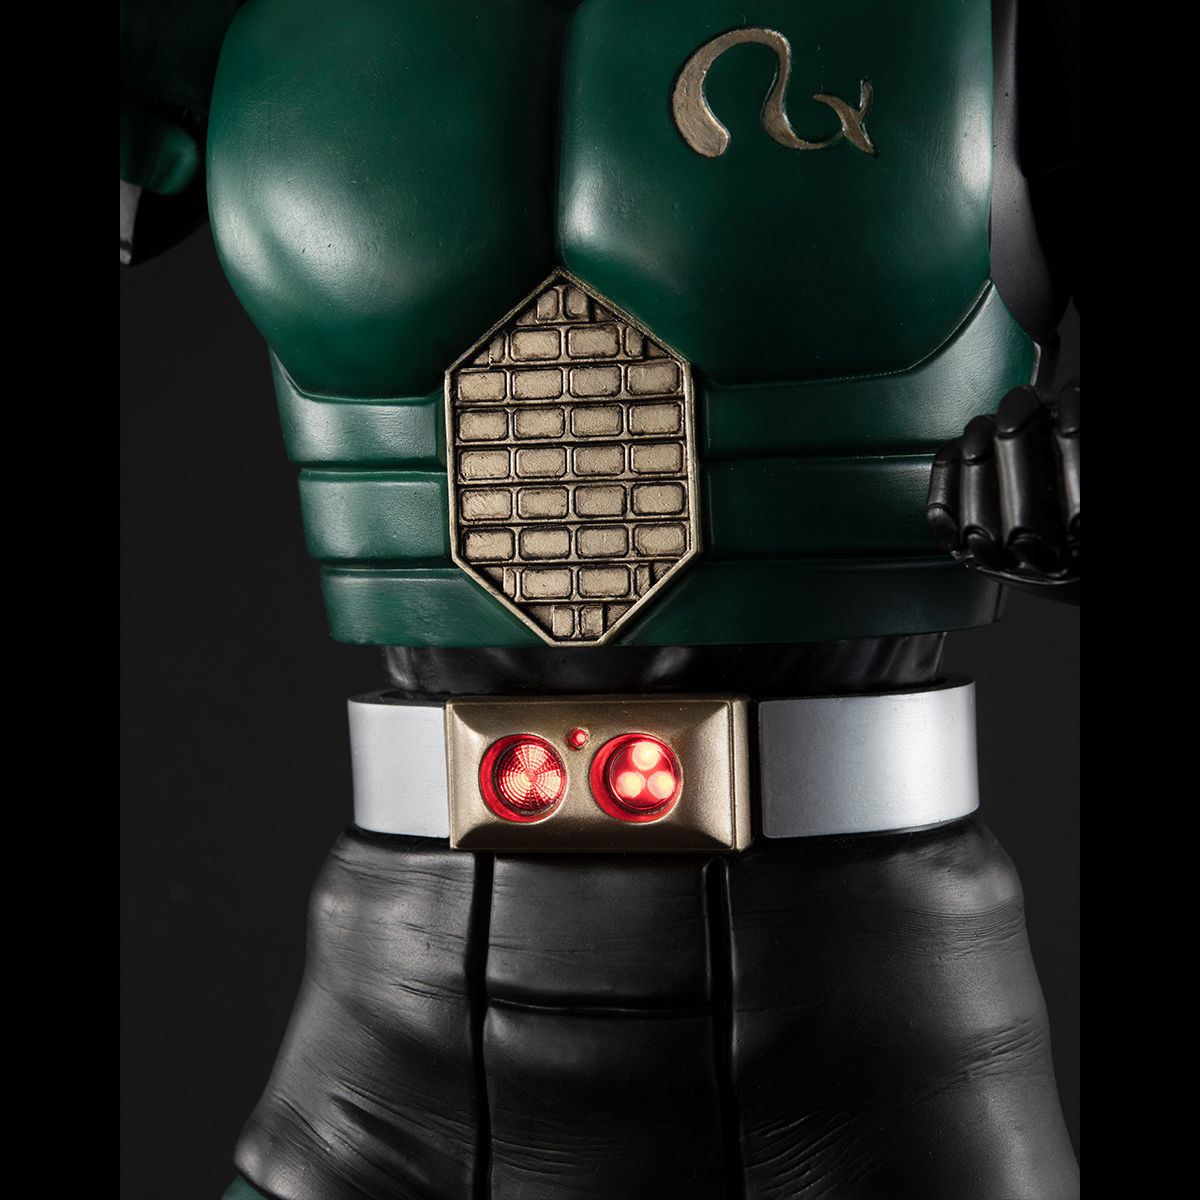 Ultimate Article 仮面ライダーBLACK RX12